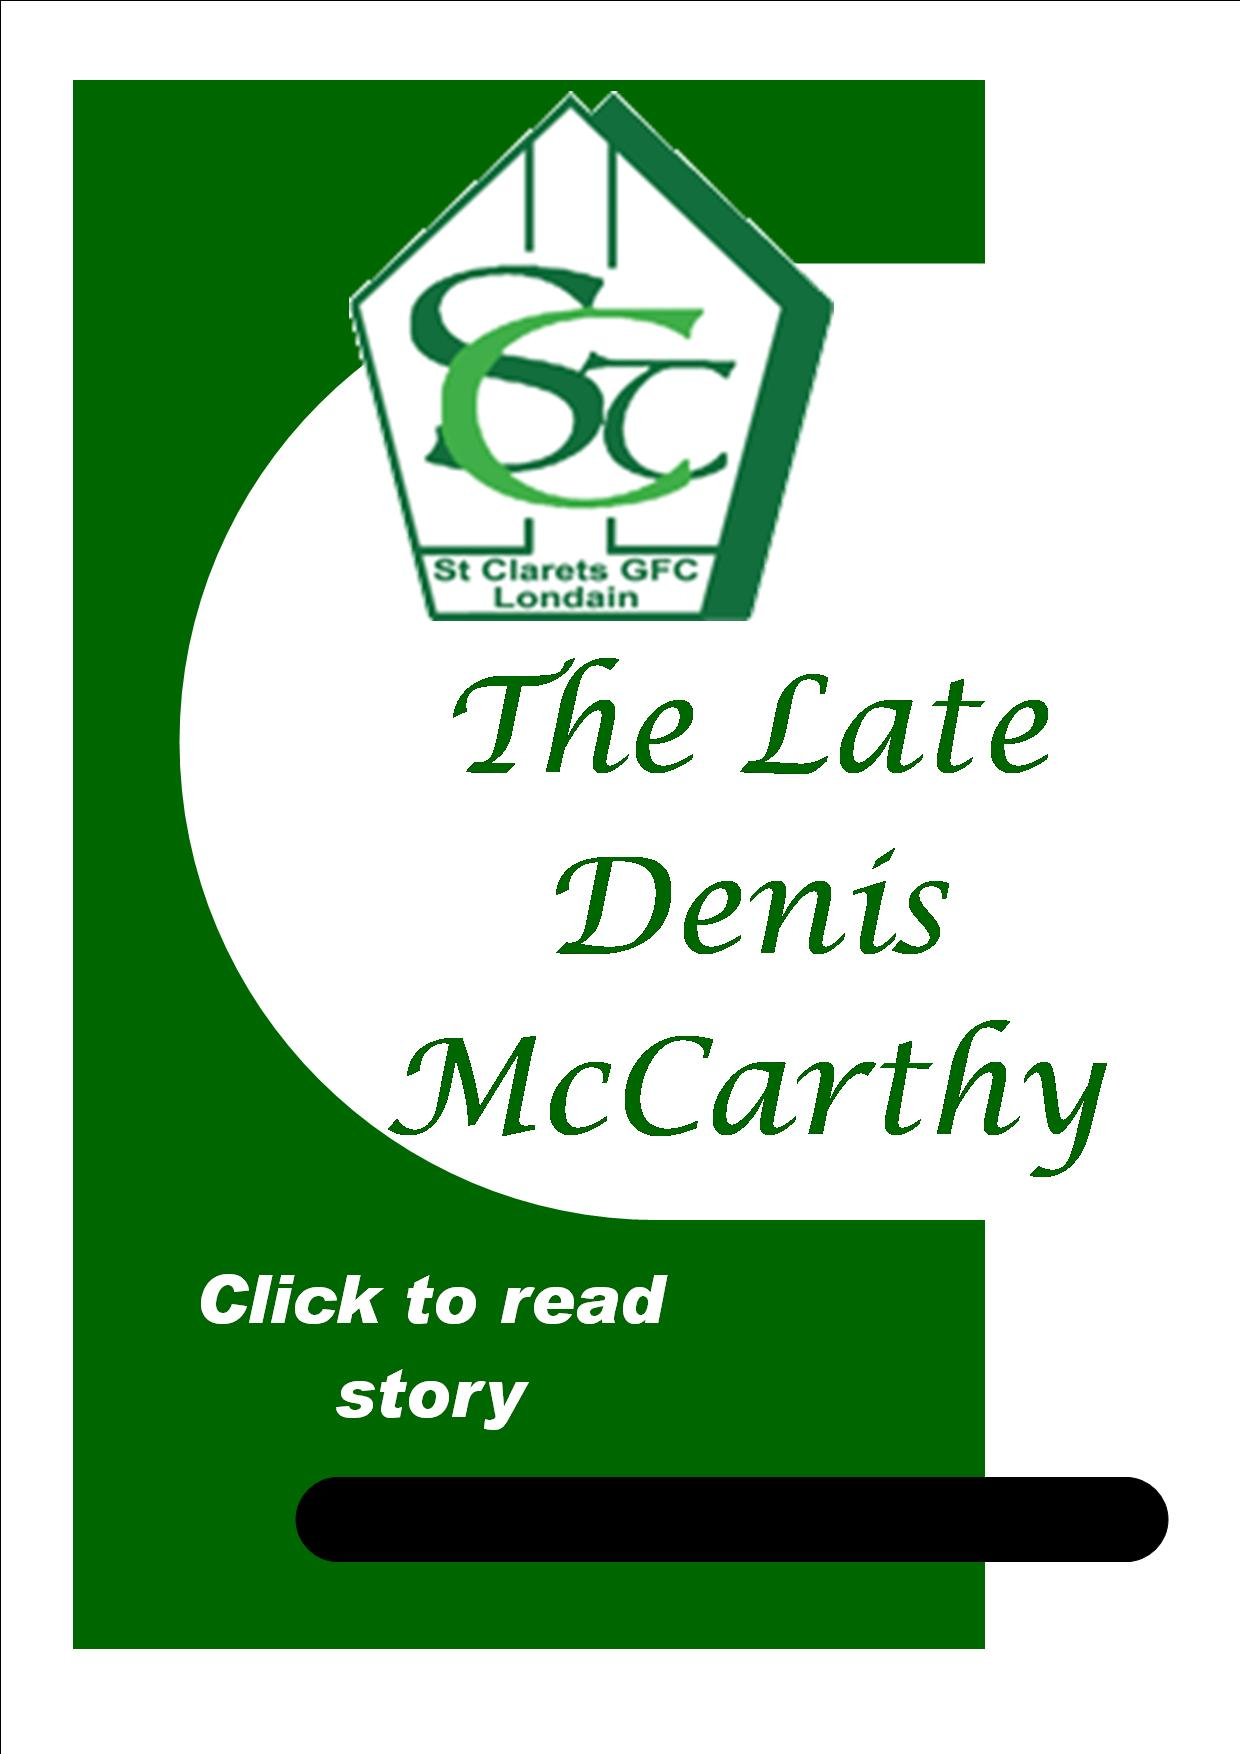 The Late Denis McCarthy